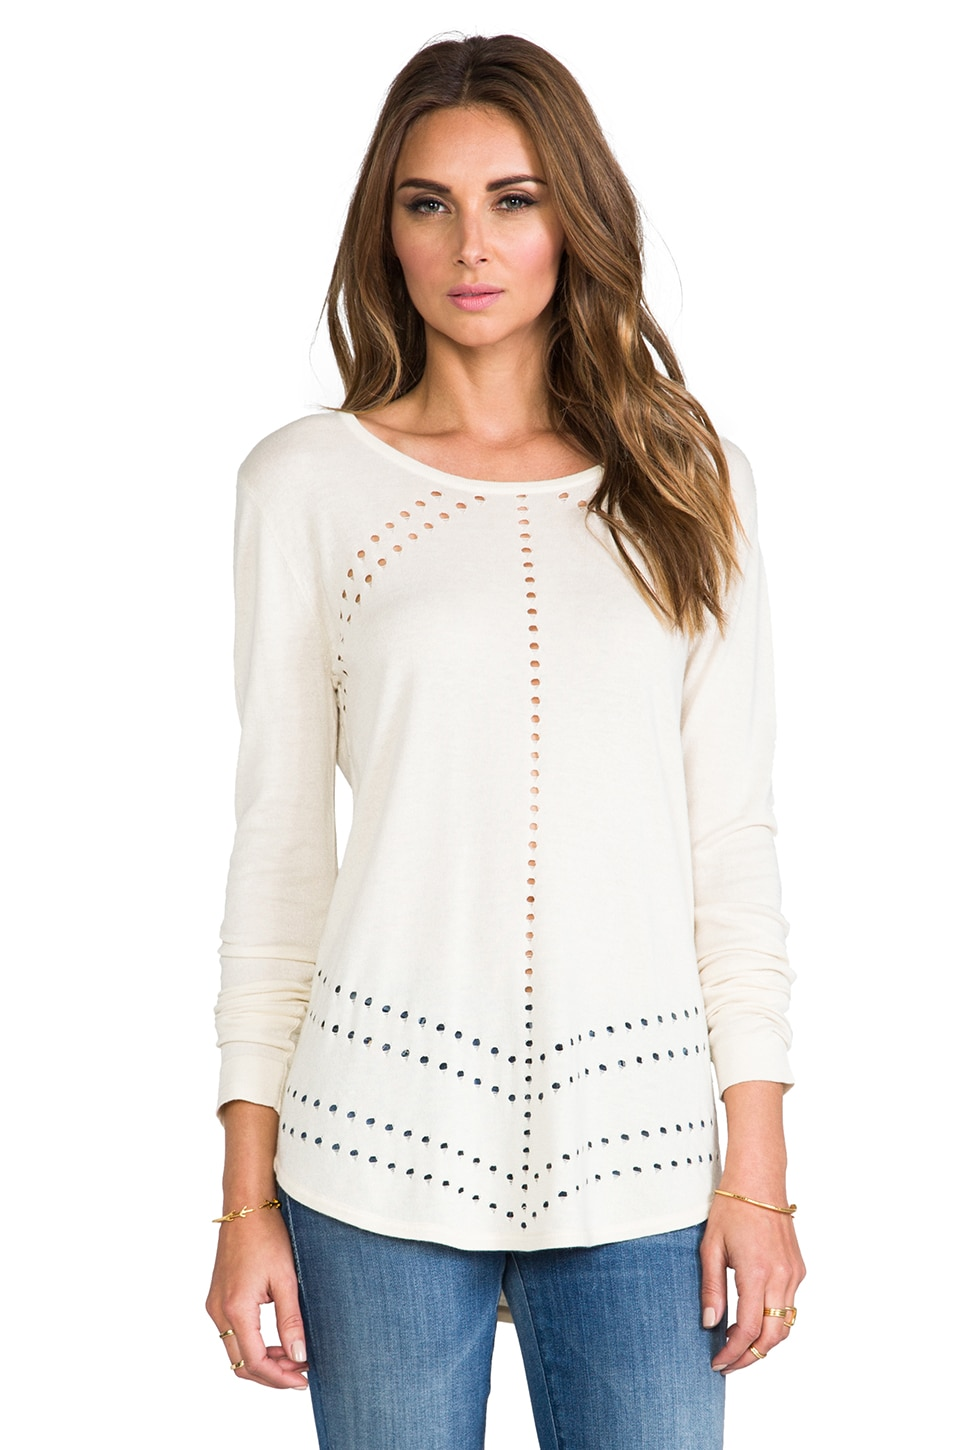 TOWNSEN Puncture Long Sleeve Top in White